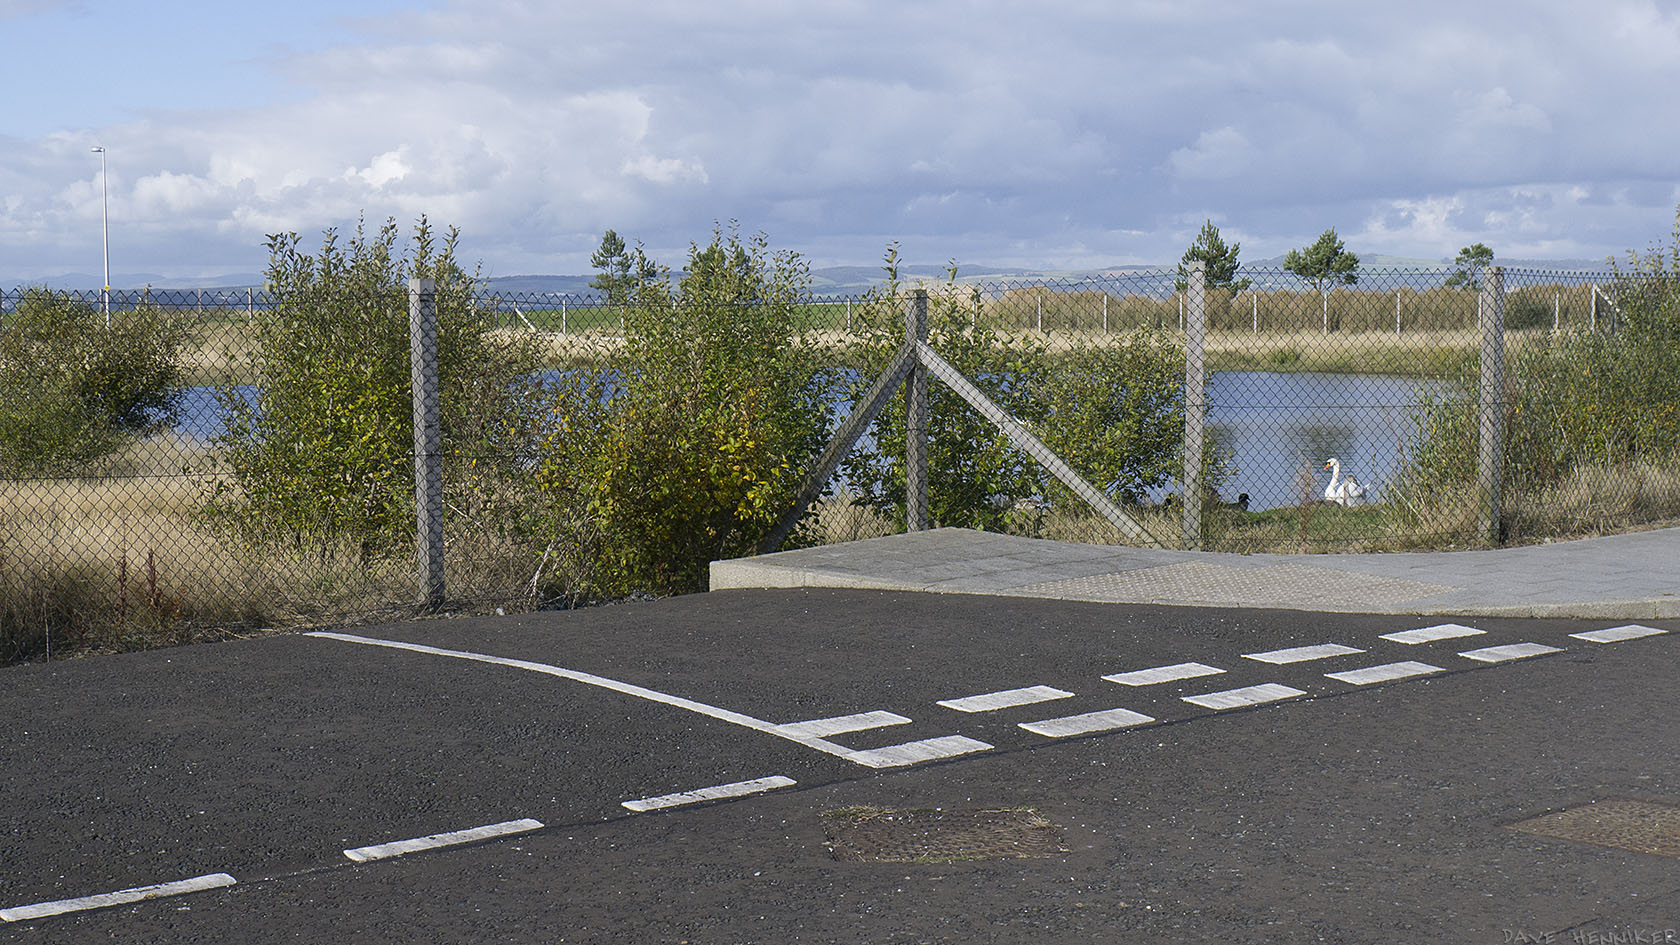 The same redundant road junction as above but with the camera panned to the right to reveal the pond with ducks and swans.